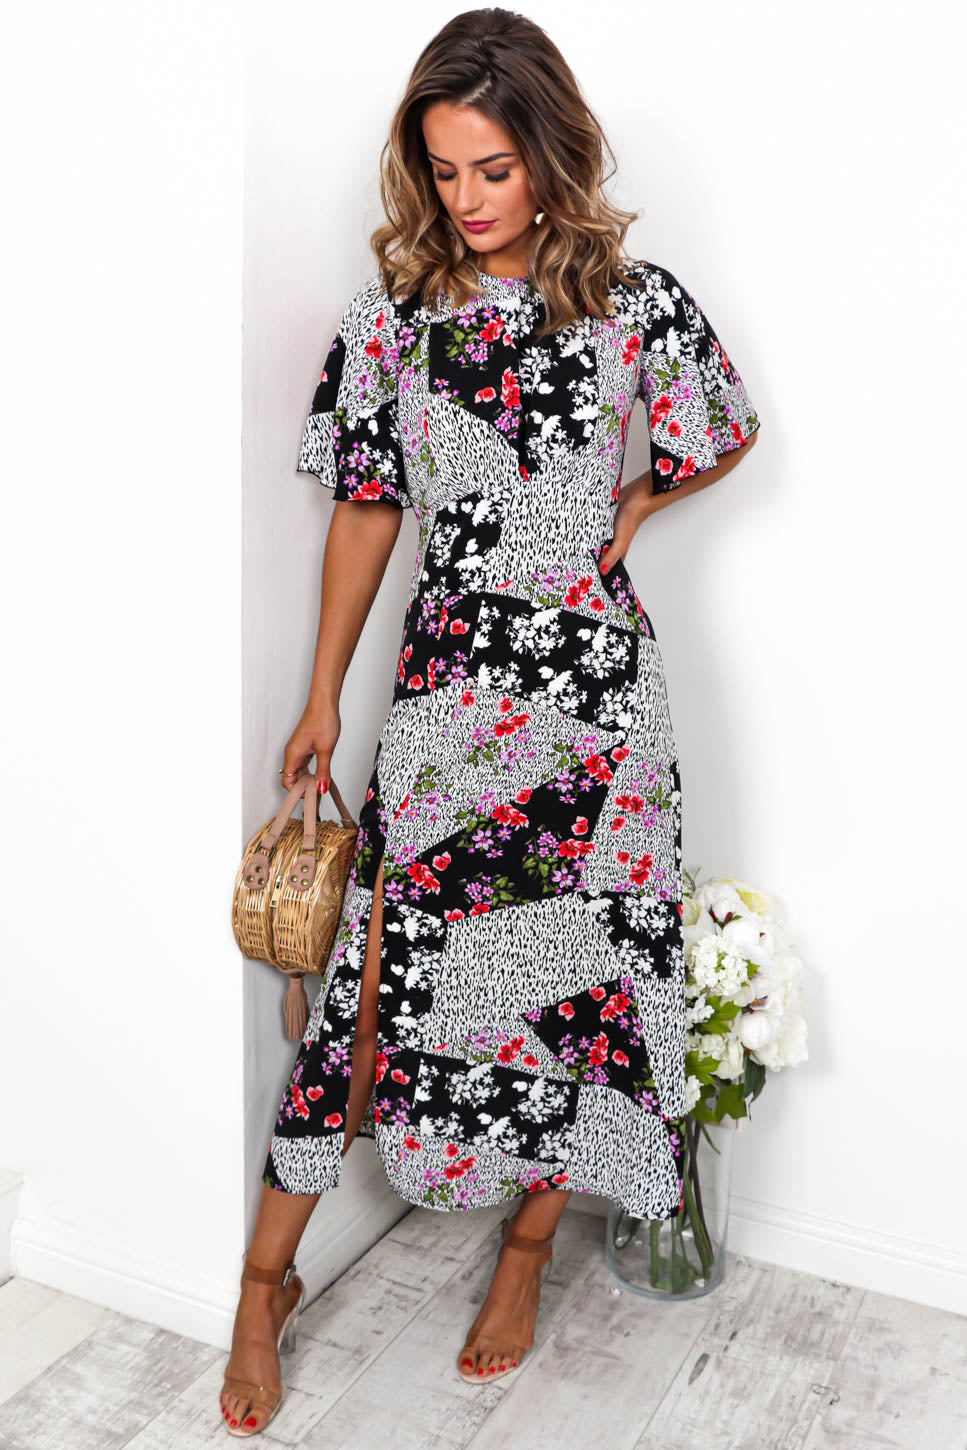 Let's Split - Maxi Dress In BLACK/FLORAL